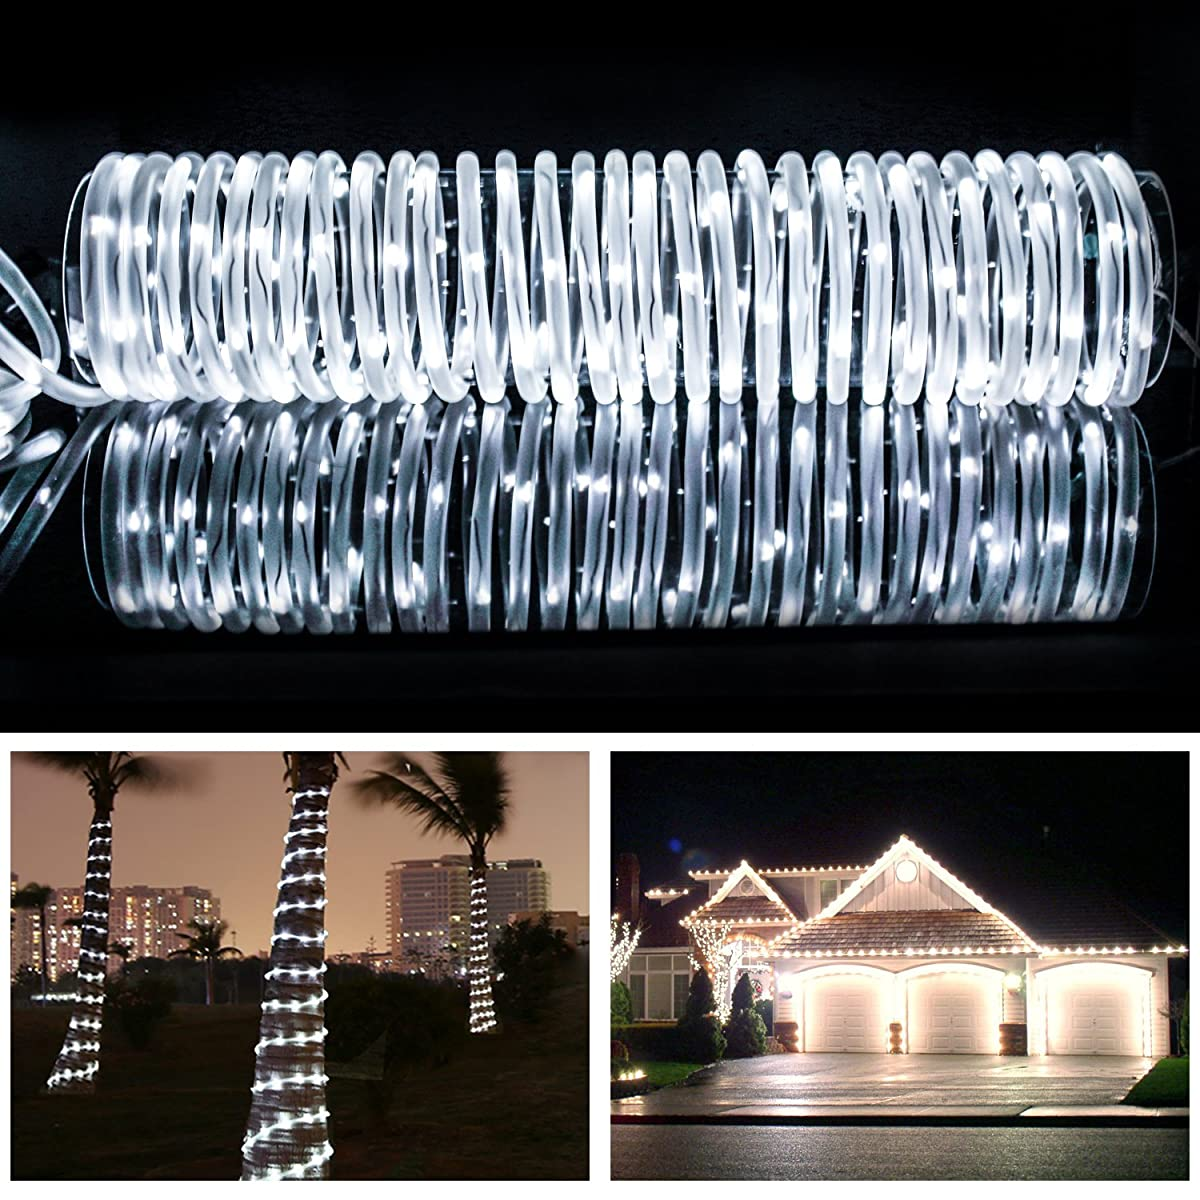 MEIKEE 33ft Dimmable Solar Rope Lights,100 LED,8 Lighting Modes, Light Sensor, Waterproof, Ideal for Decorations Christmas,Gardens, Lawn, Patio, Weddings, Parties(Daylight White)